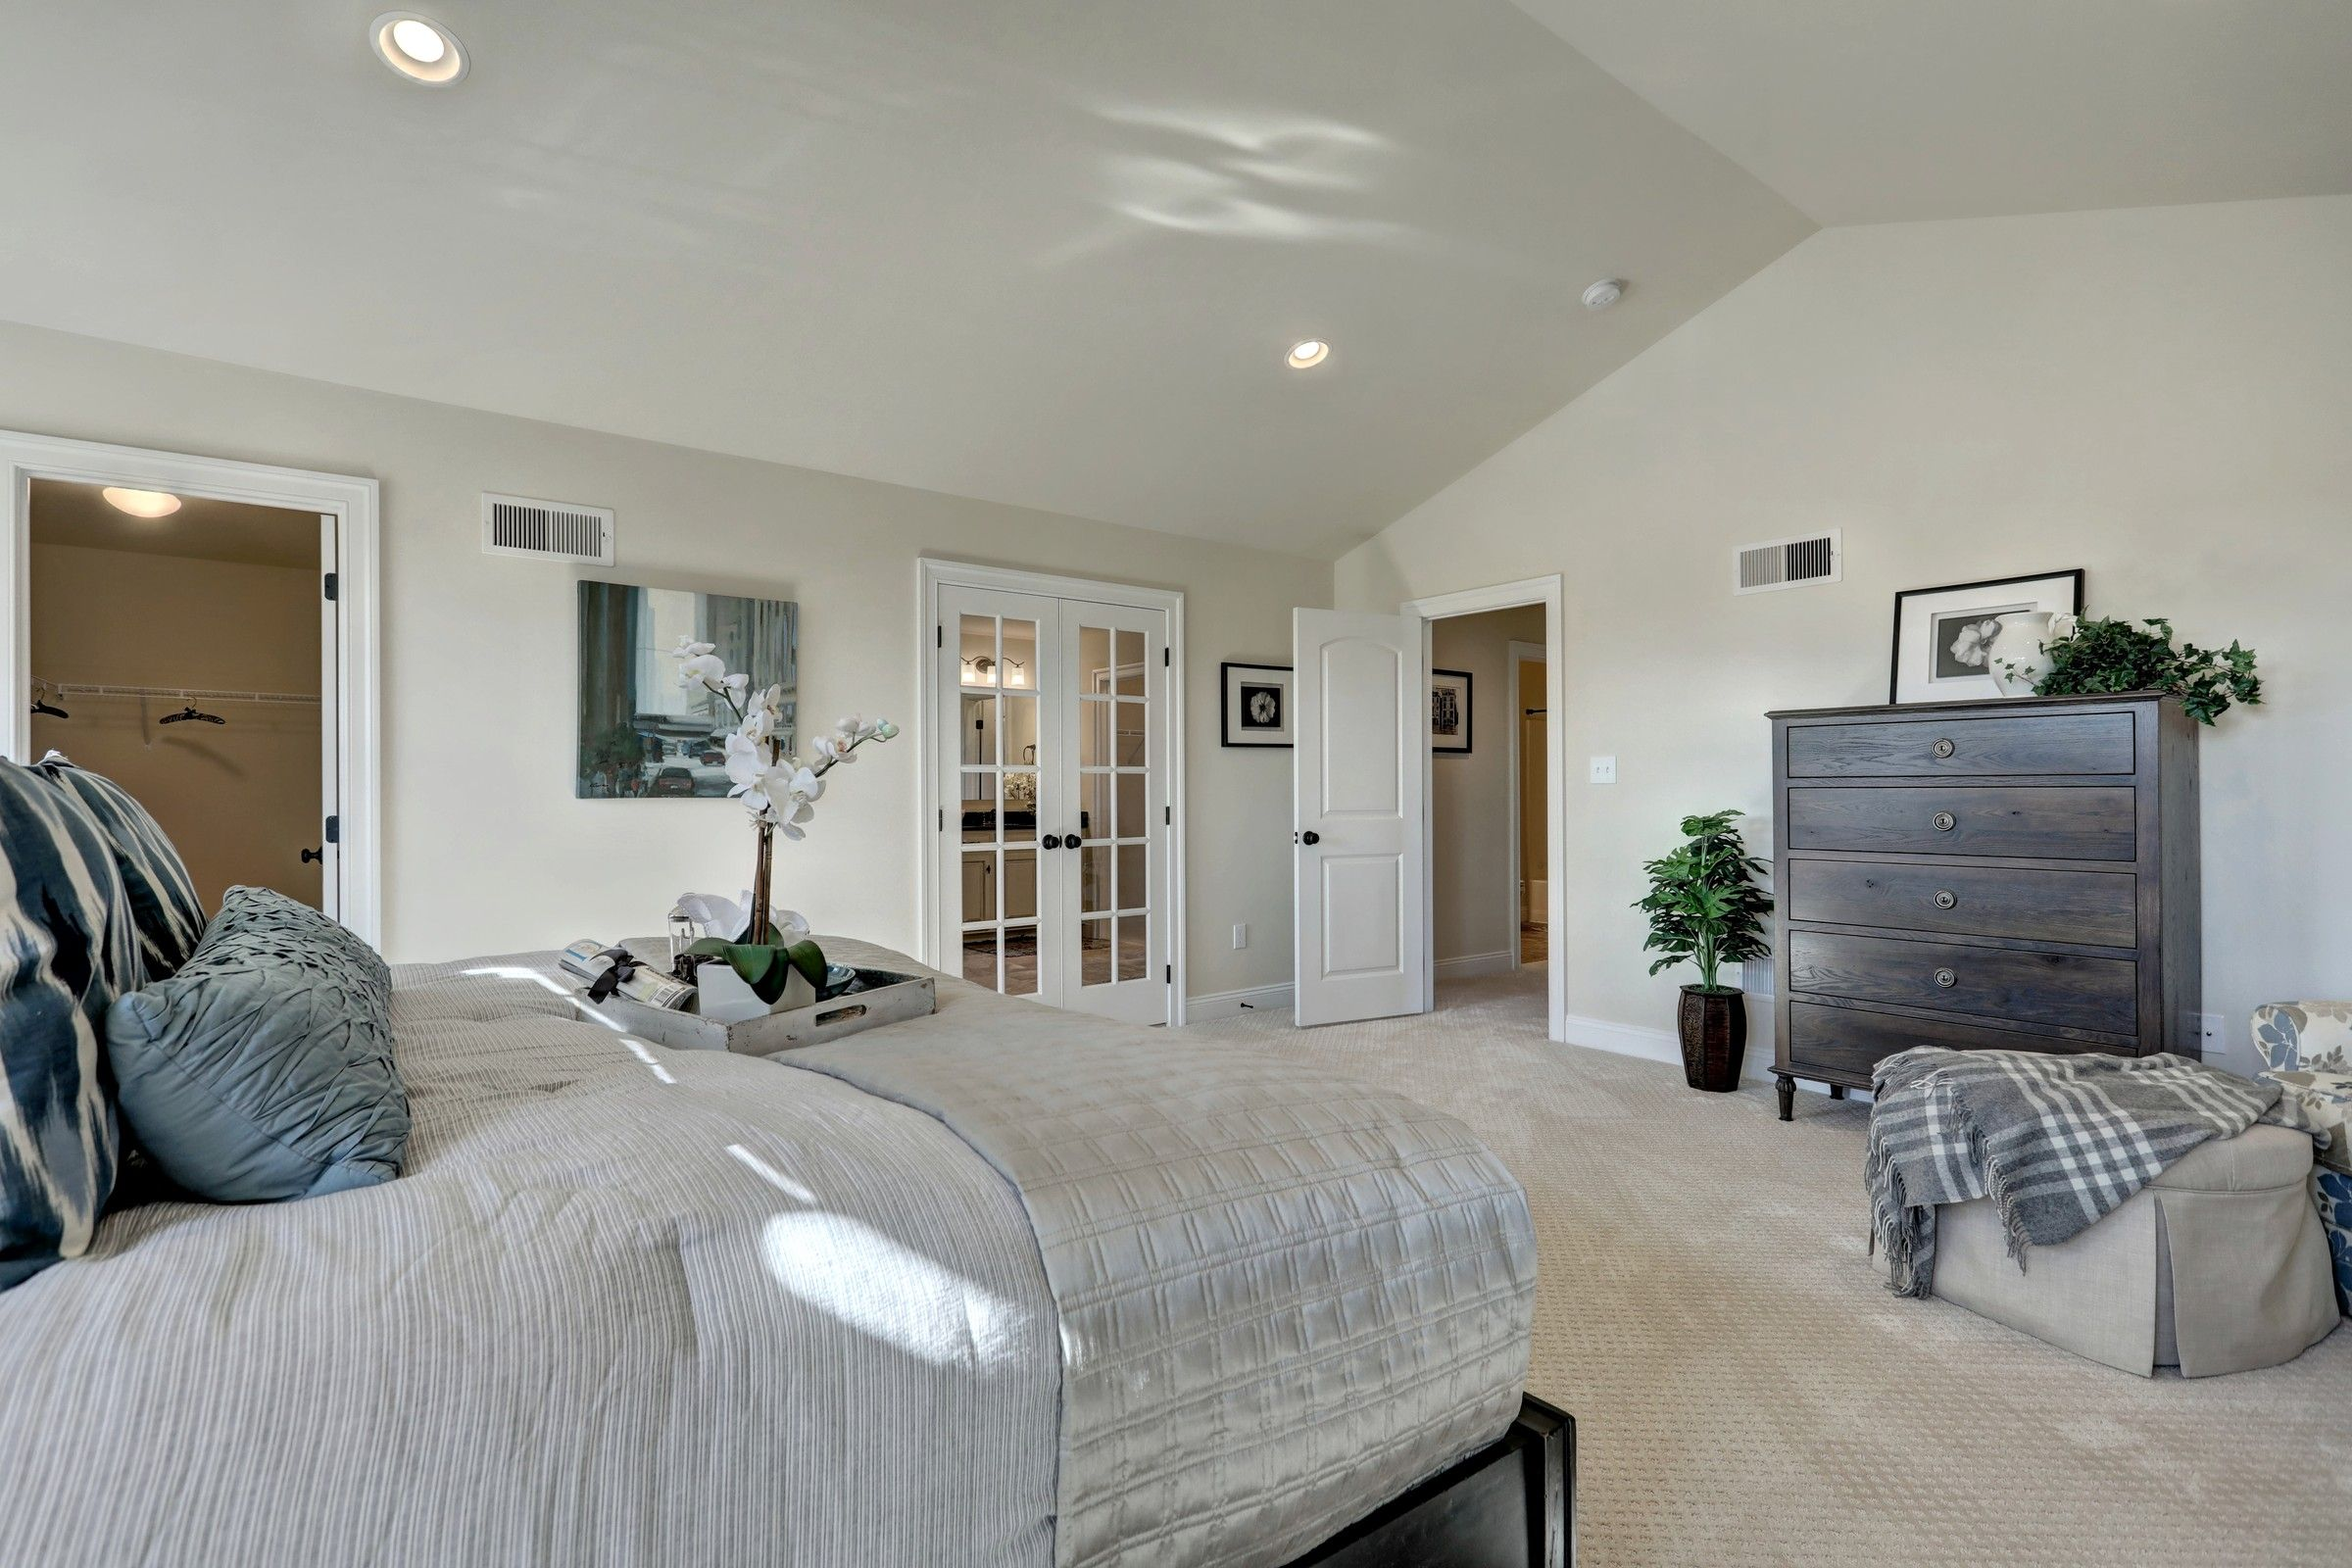 Bedroom featured in the Parker Farmhouse By Keystone Custom Homes in York, PA